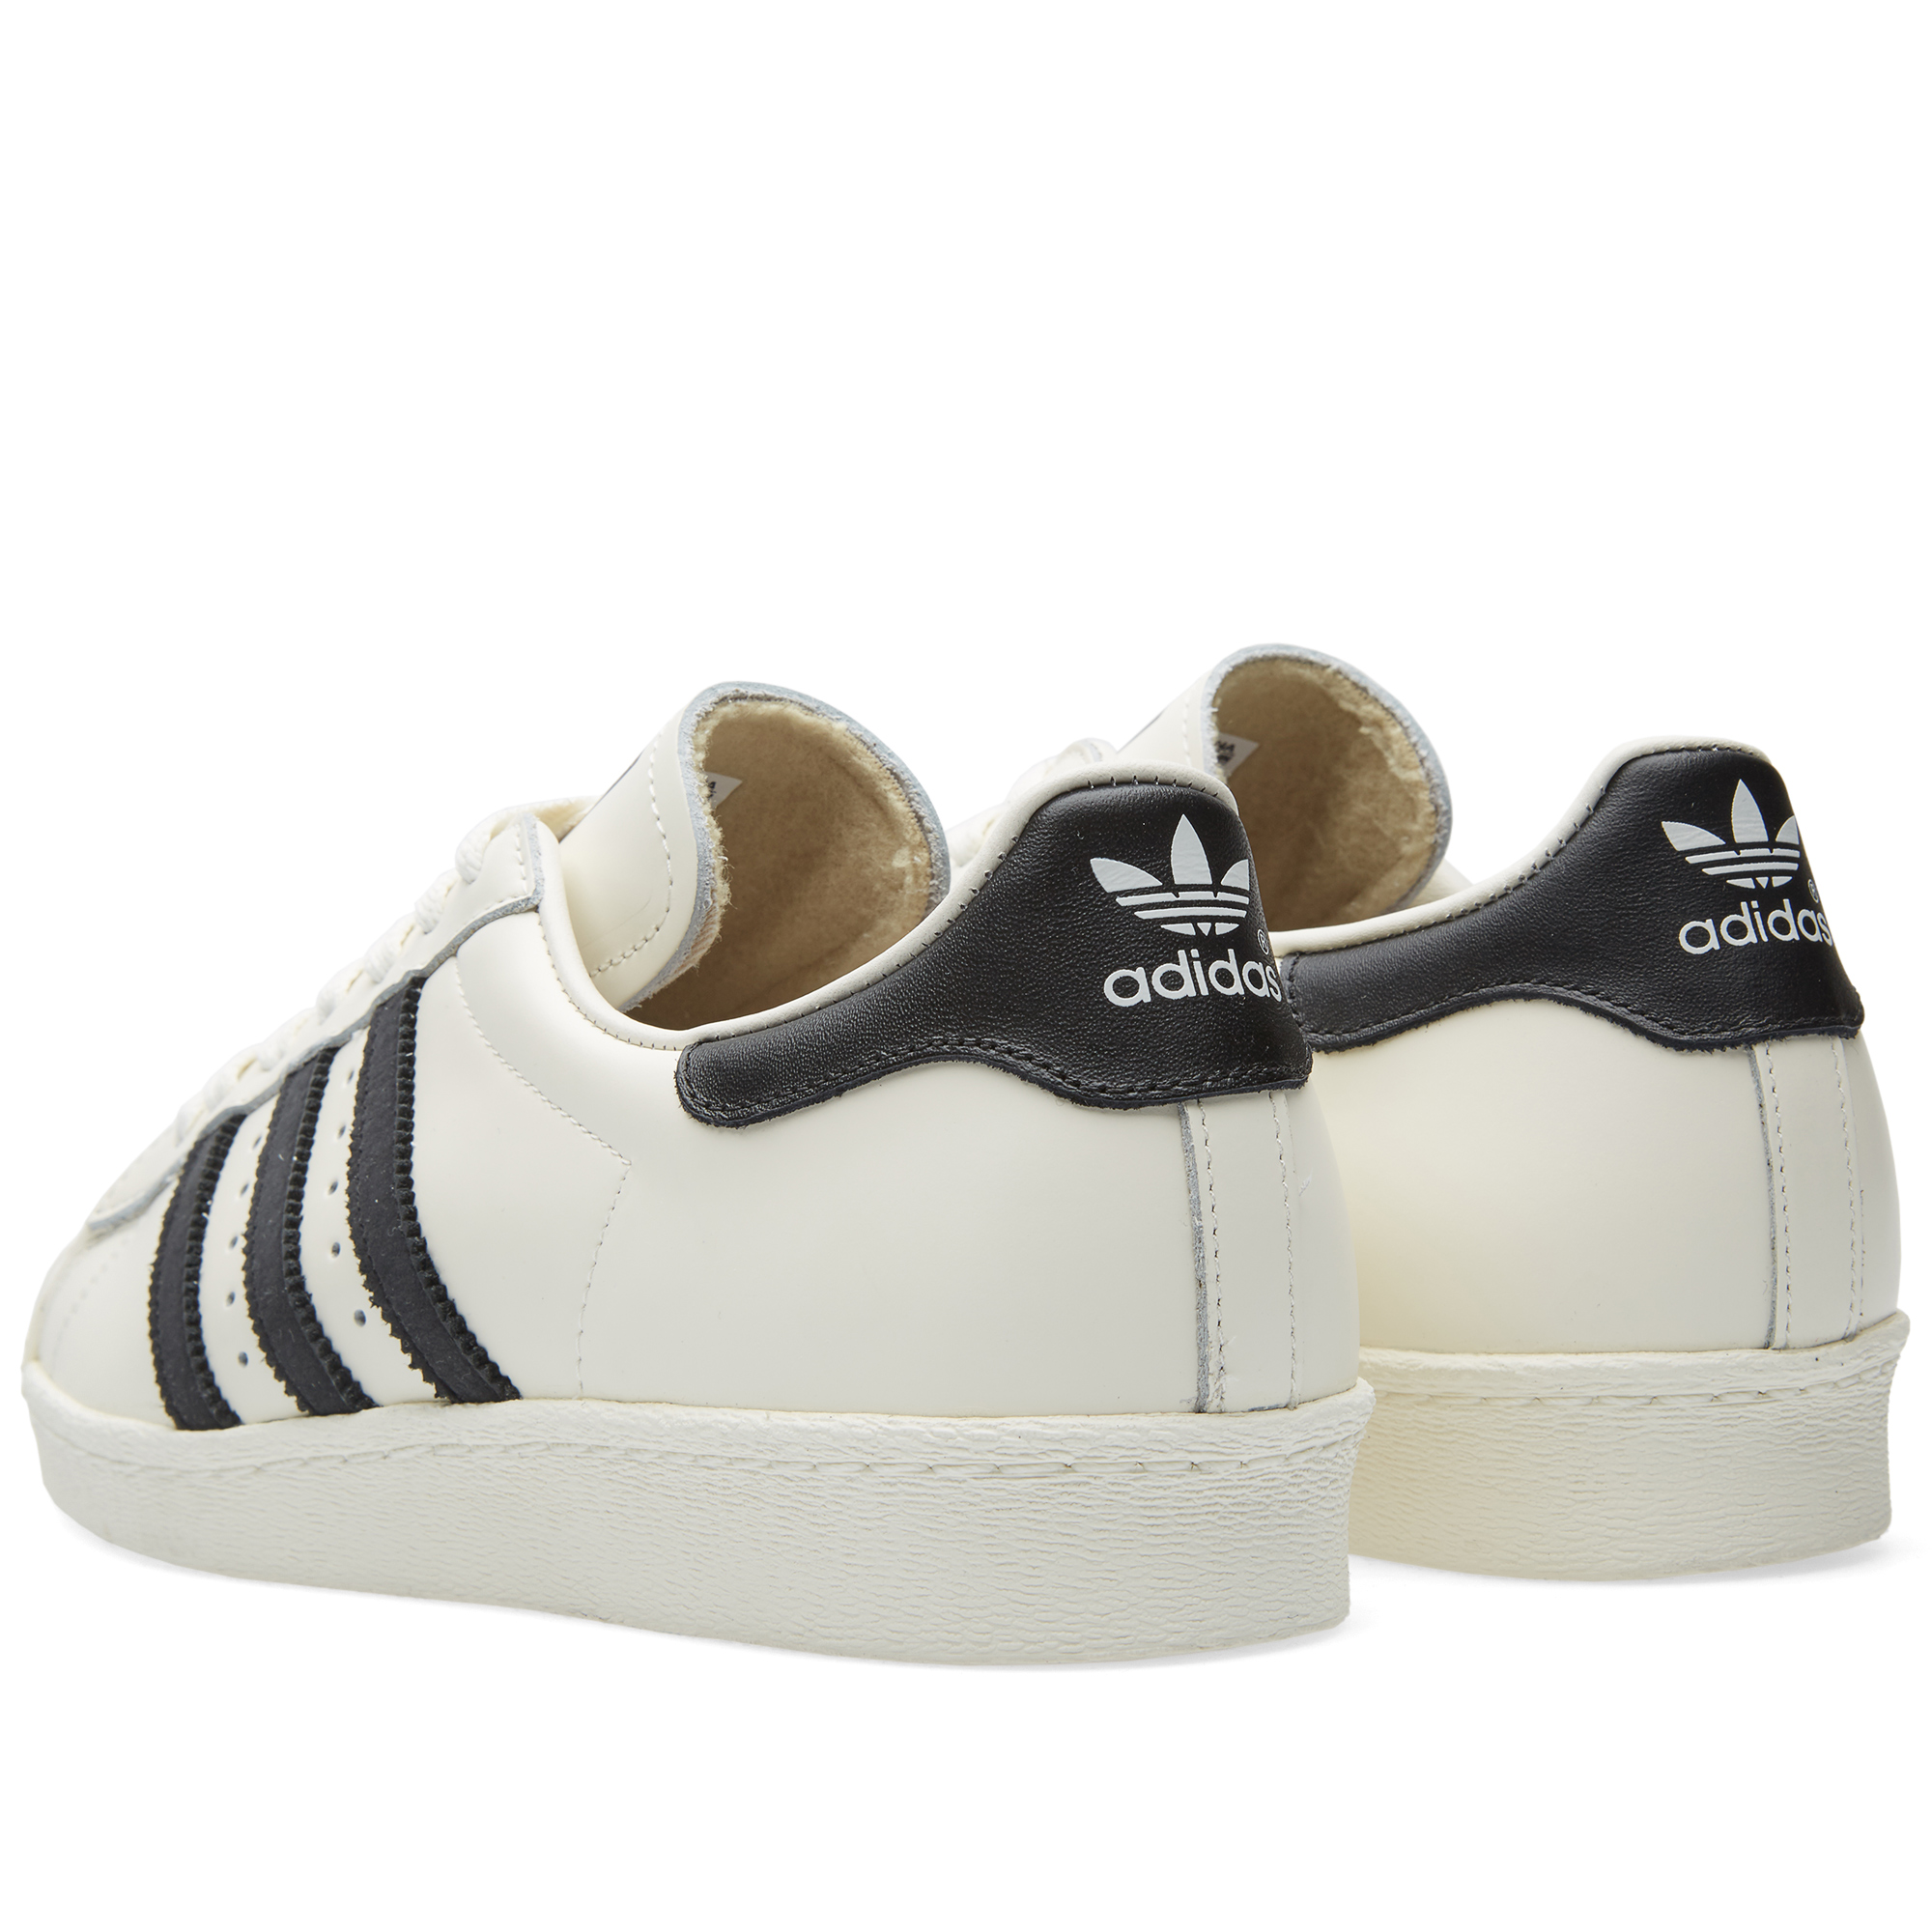 Beauty & Youth x Cheap Adidas Superstar